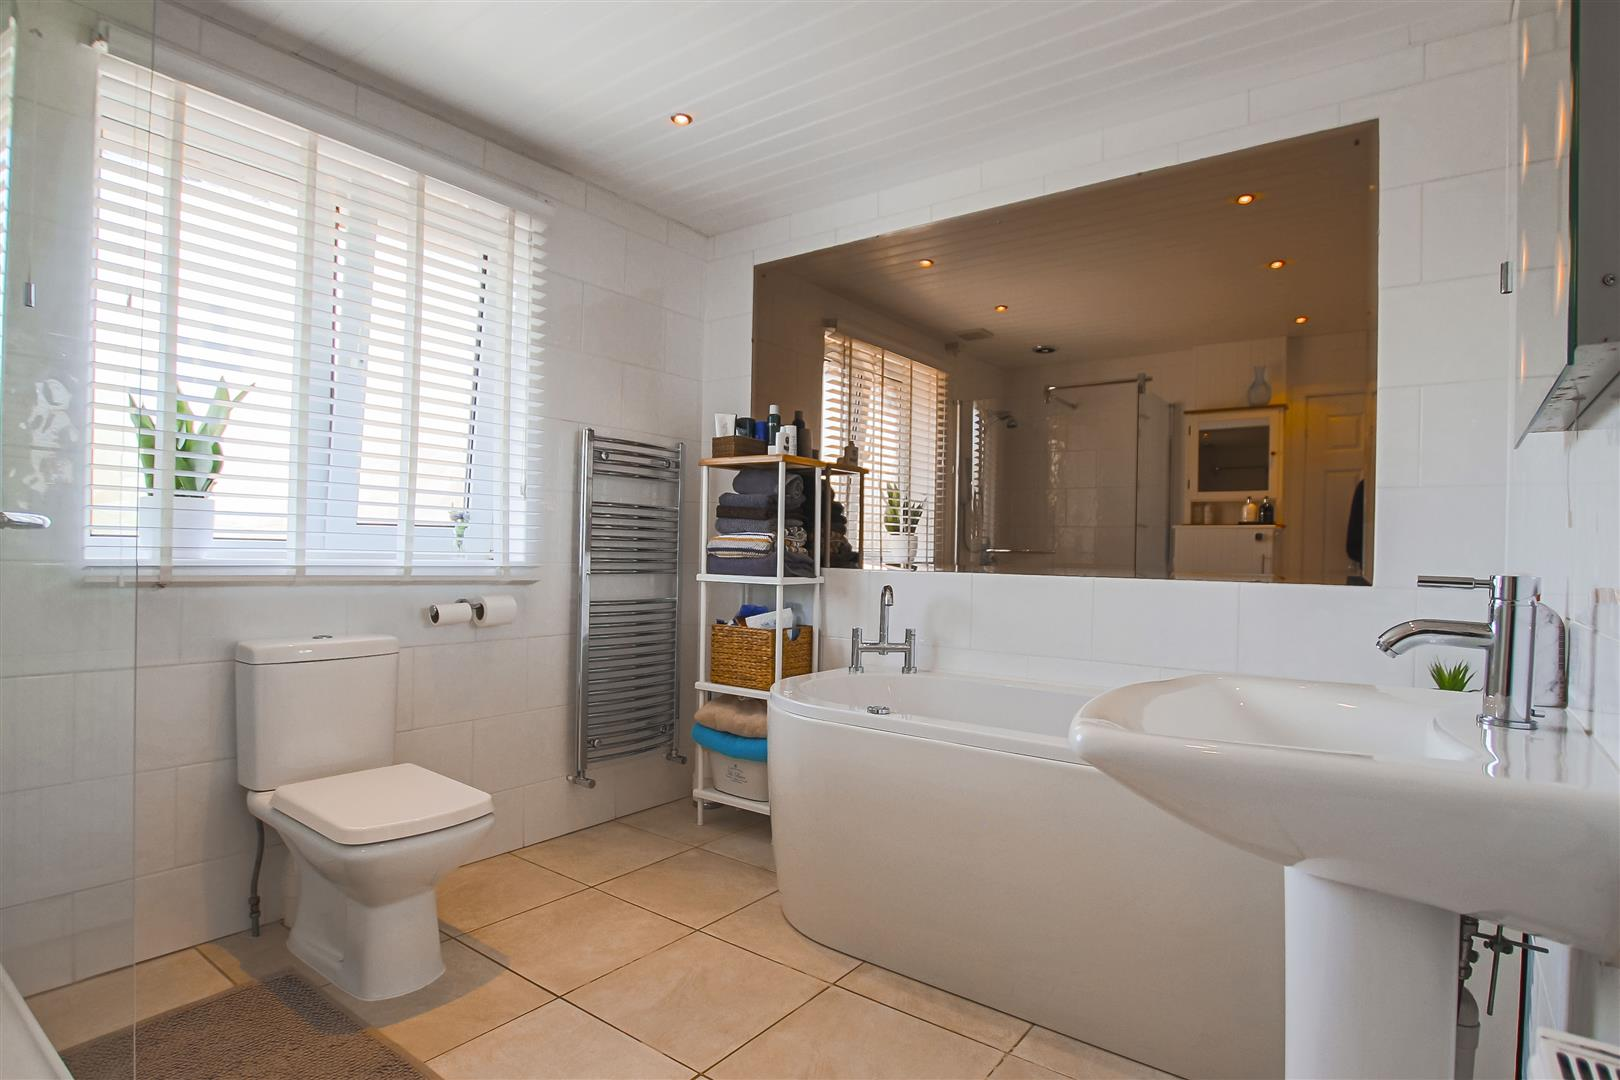 6 Bedroom House For Sale - Image 10